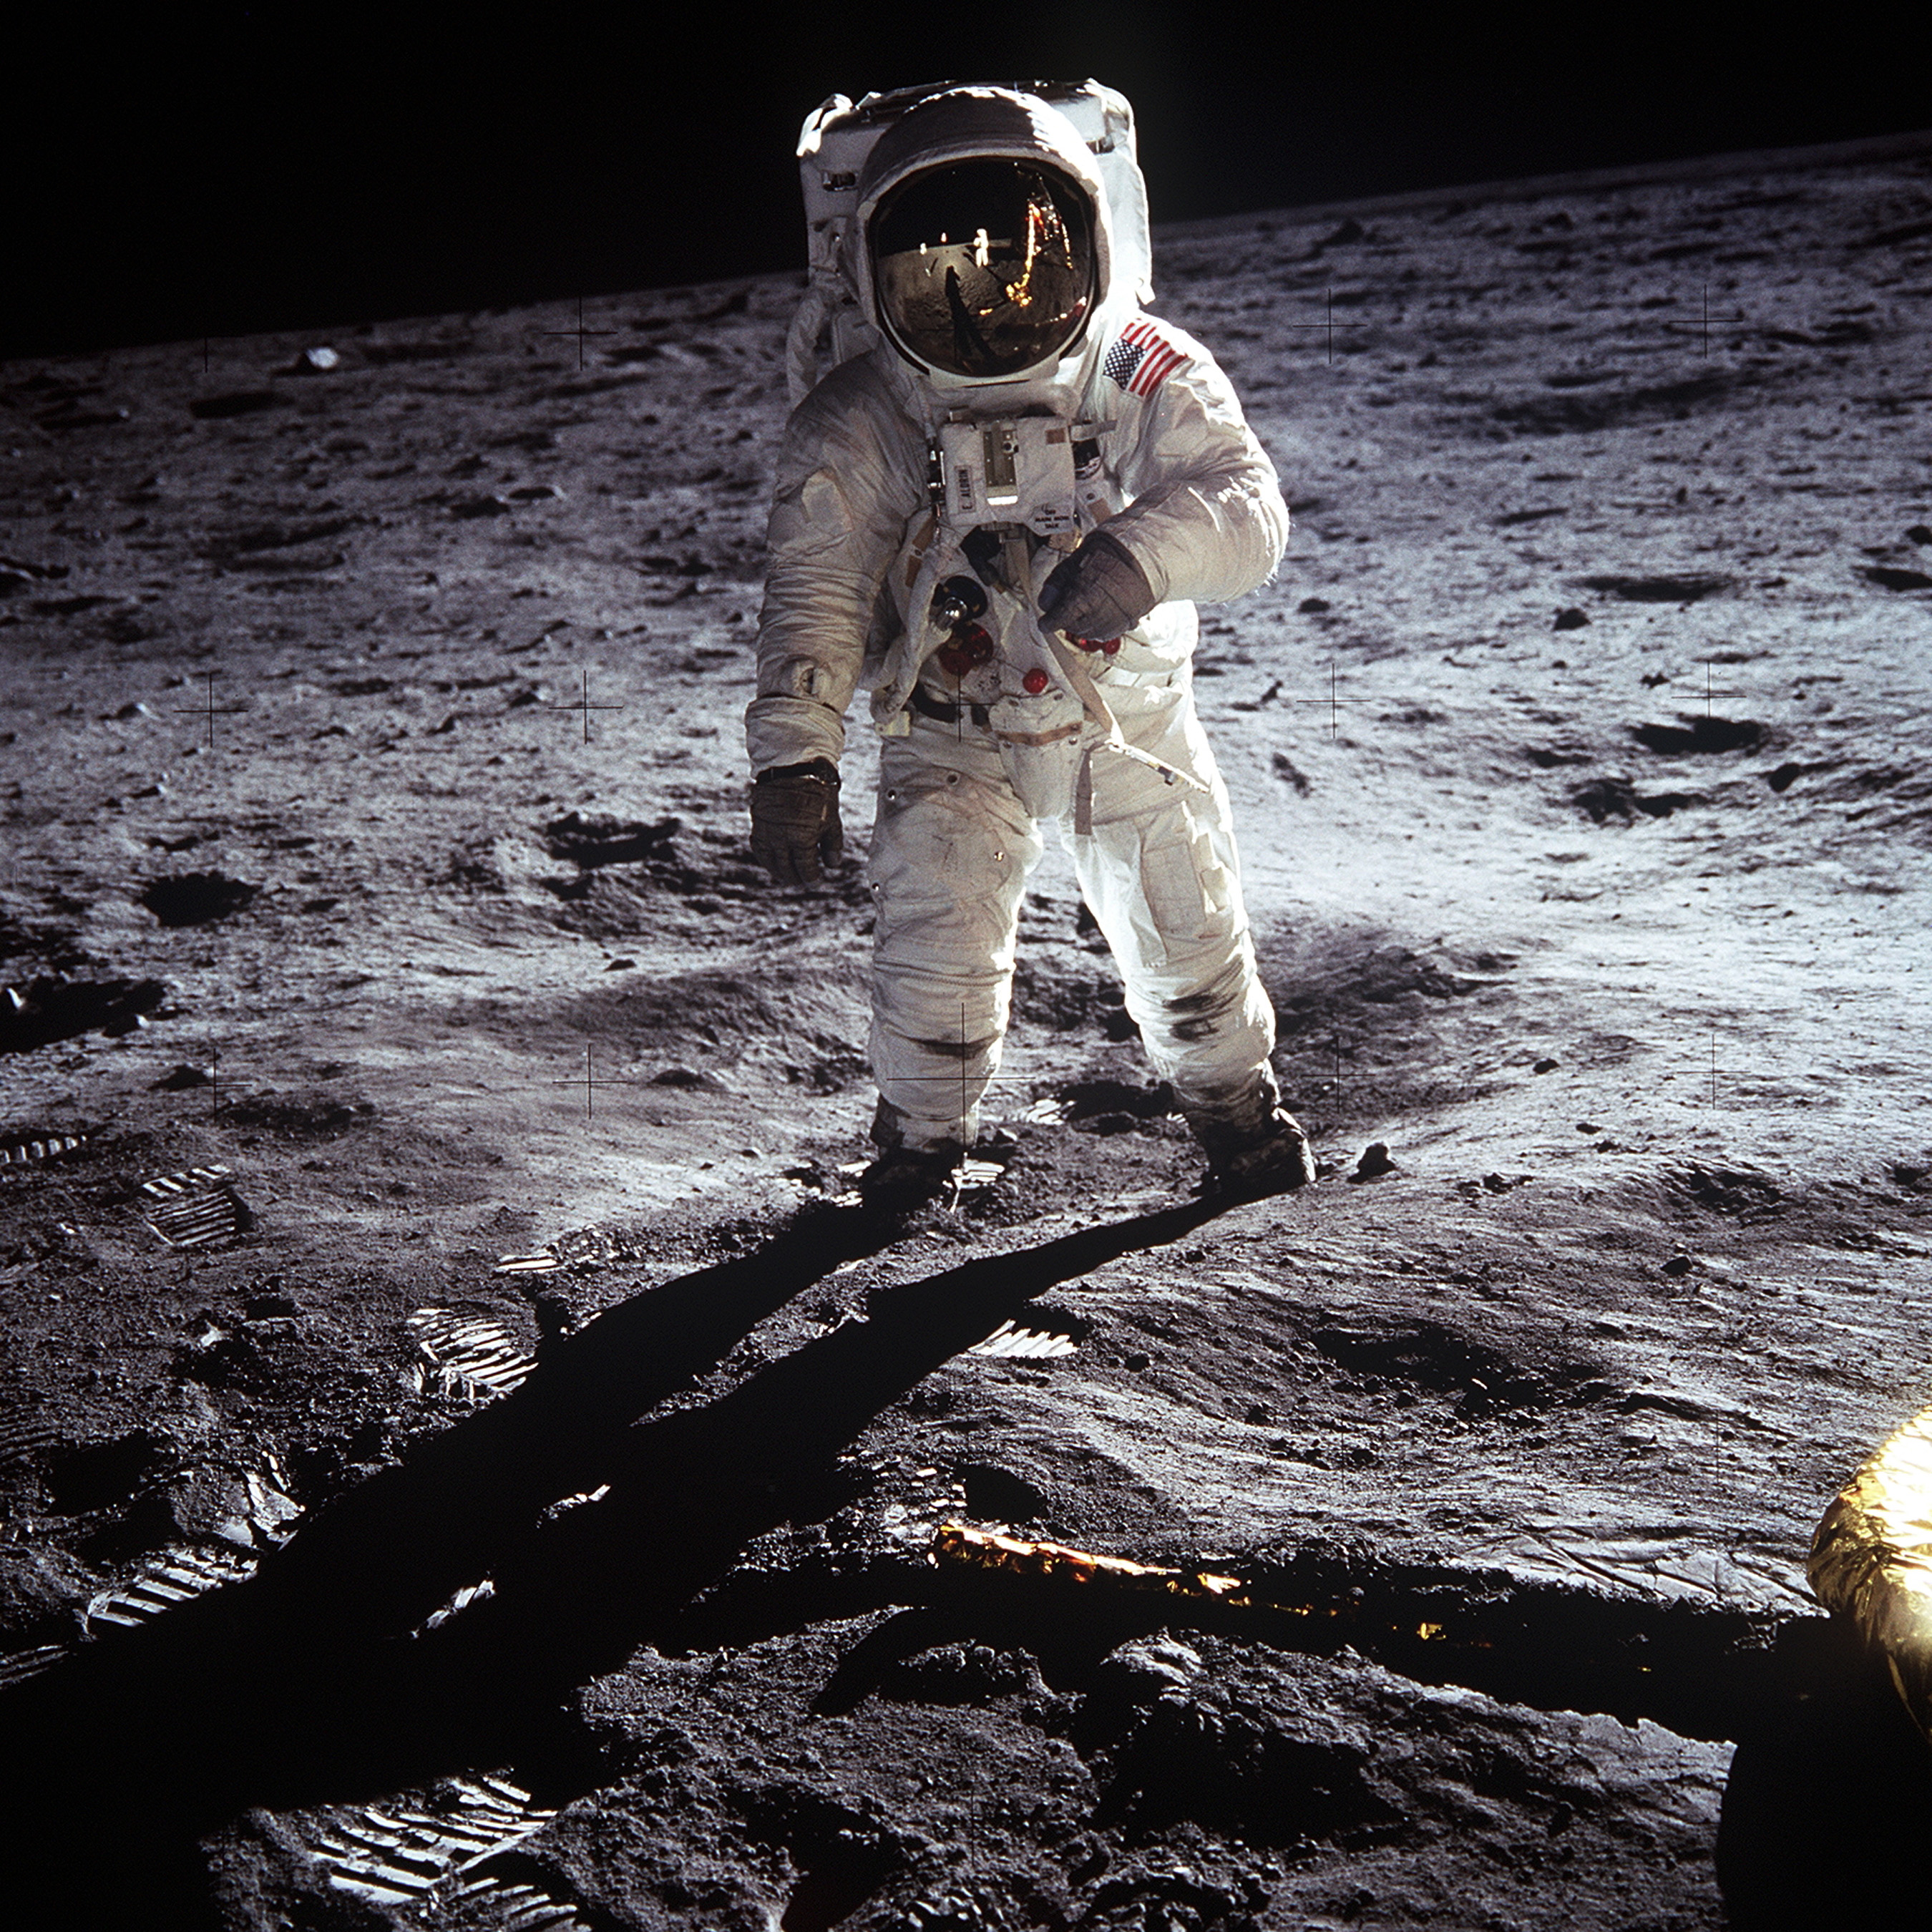 http://upload.wikimedia.org/wikipedia/commons/9/9c/Aldrin_Apollo_11.jpg